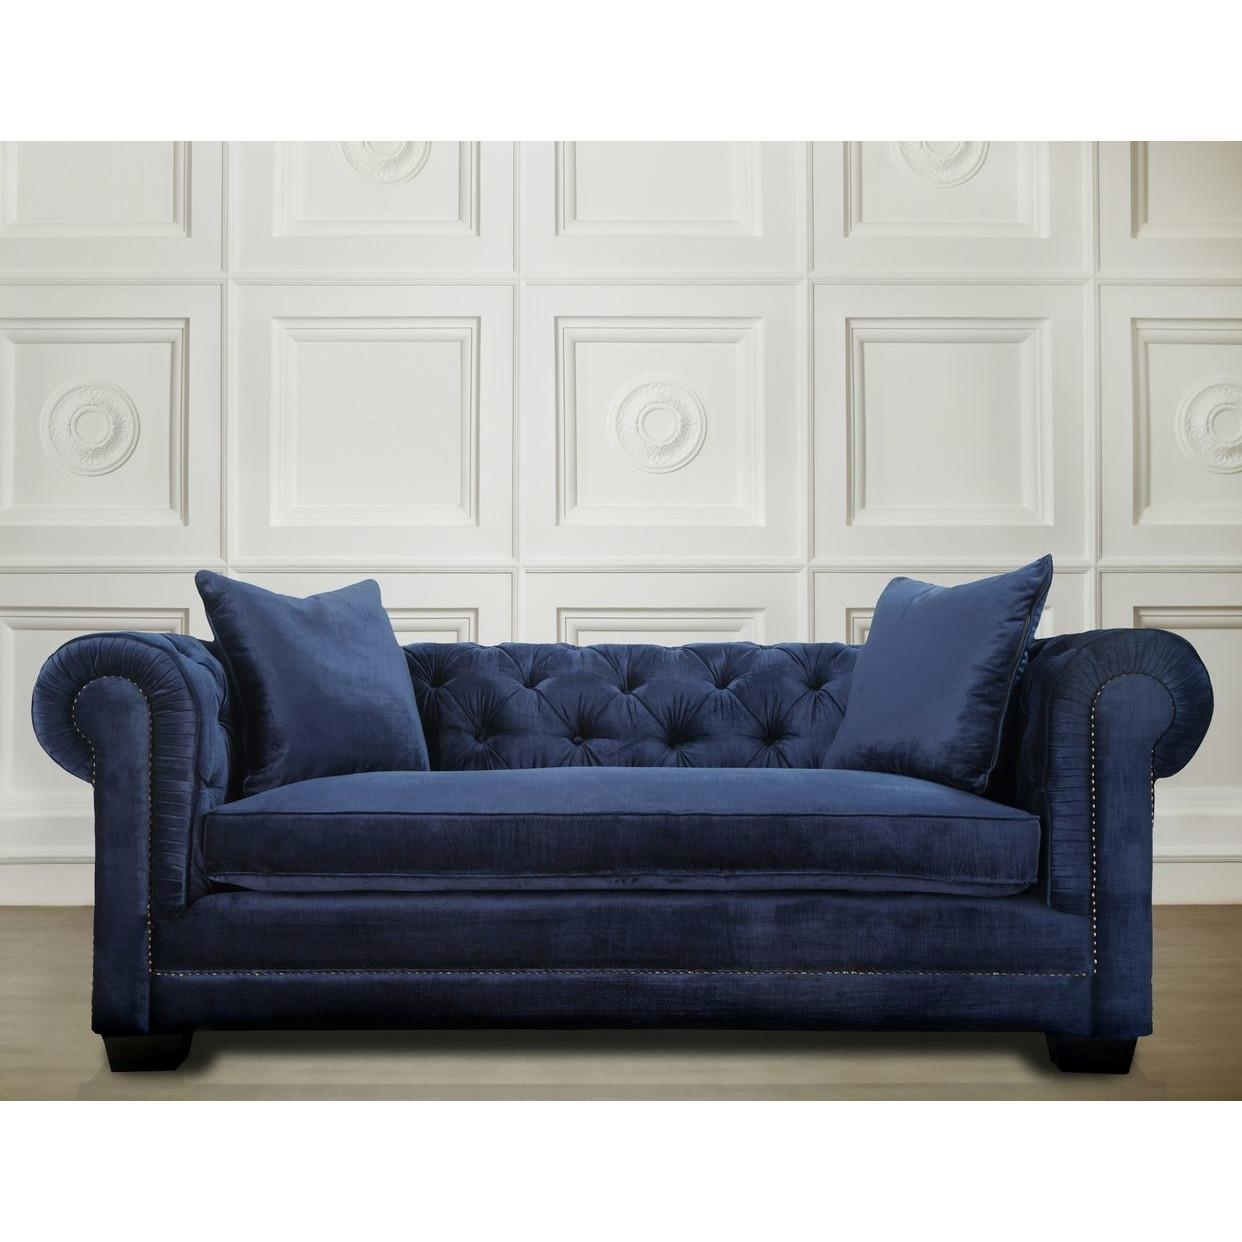 Furniture: Broyhill Sofas | Broyhill Reclining Sofas | Broyhill Sofa With Regard To Broyhill Perspectives Sofas (View 17 of 20)